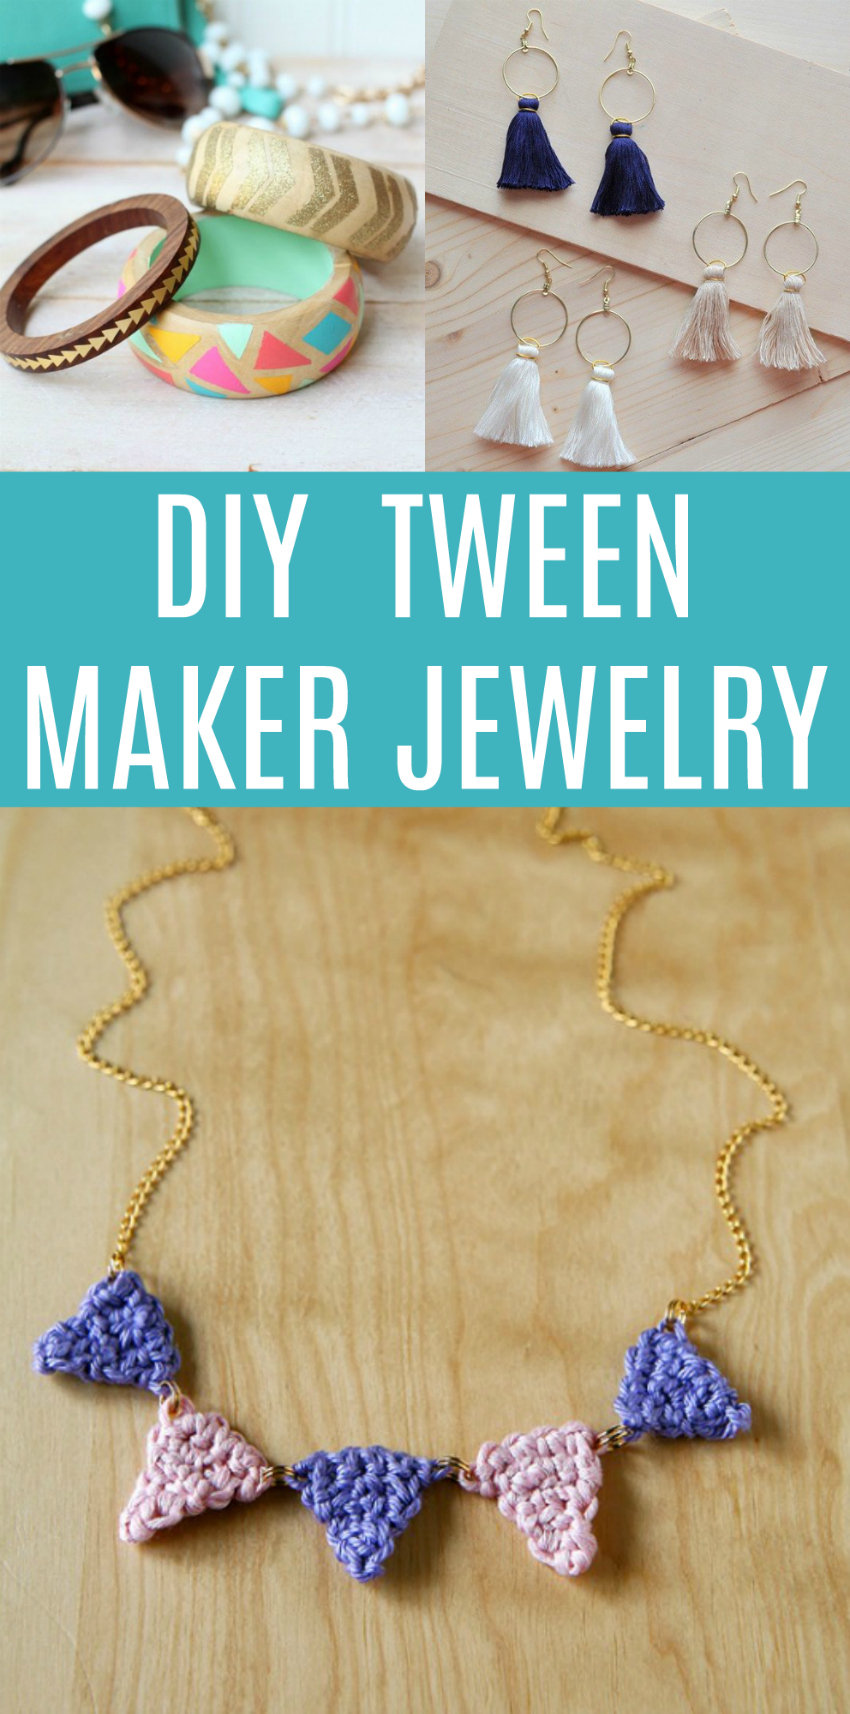 DIY Tween Maker Jewelry Ideas